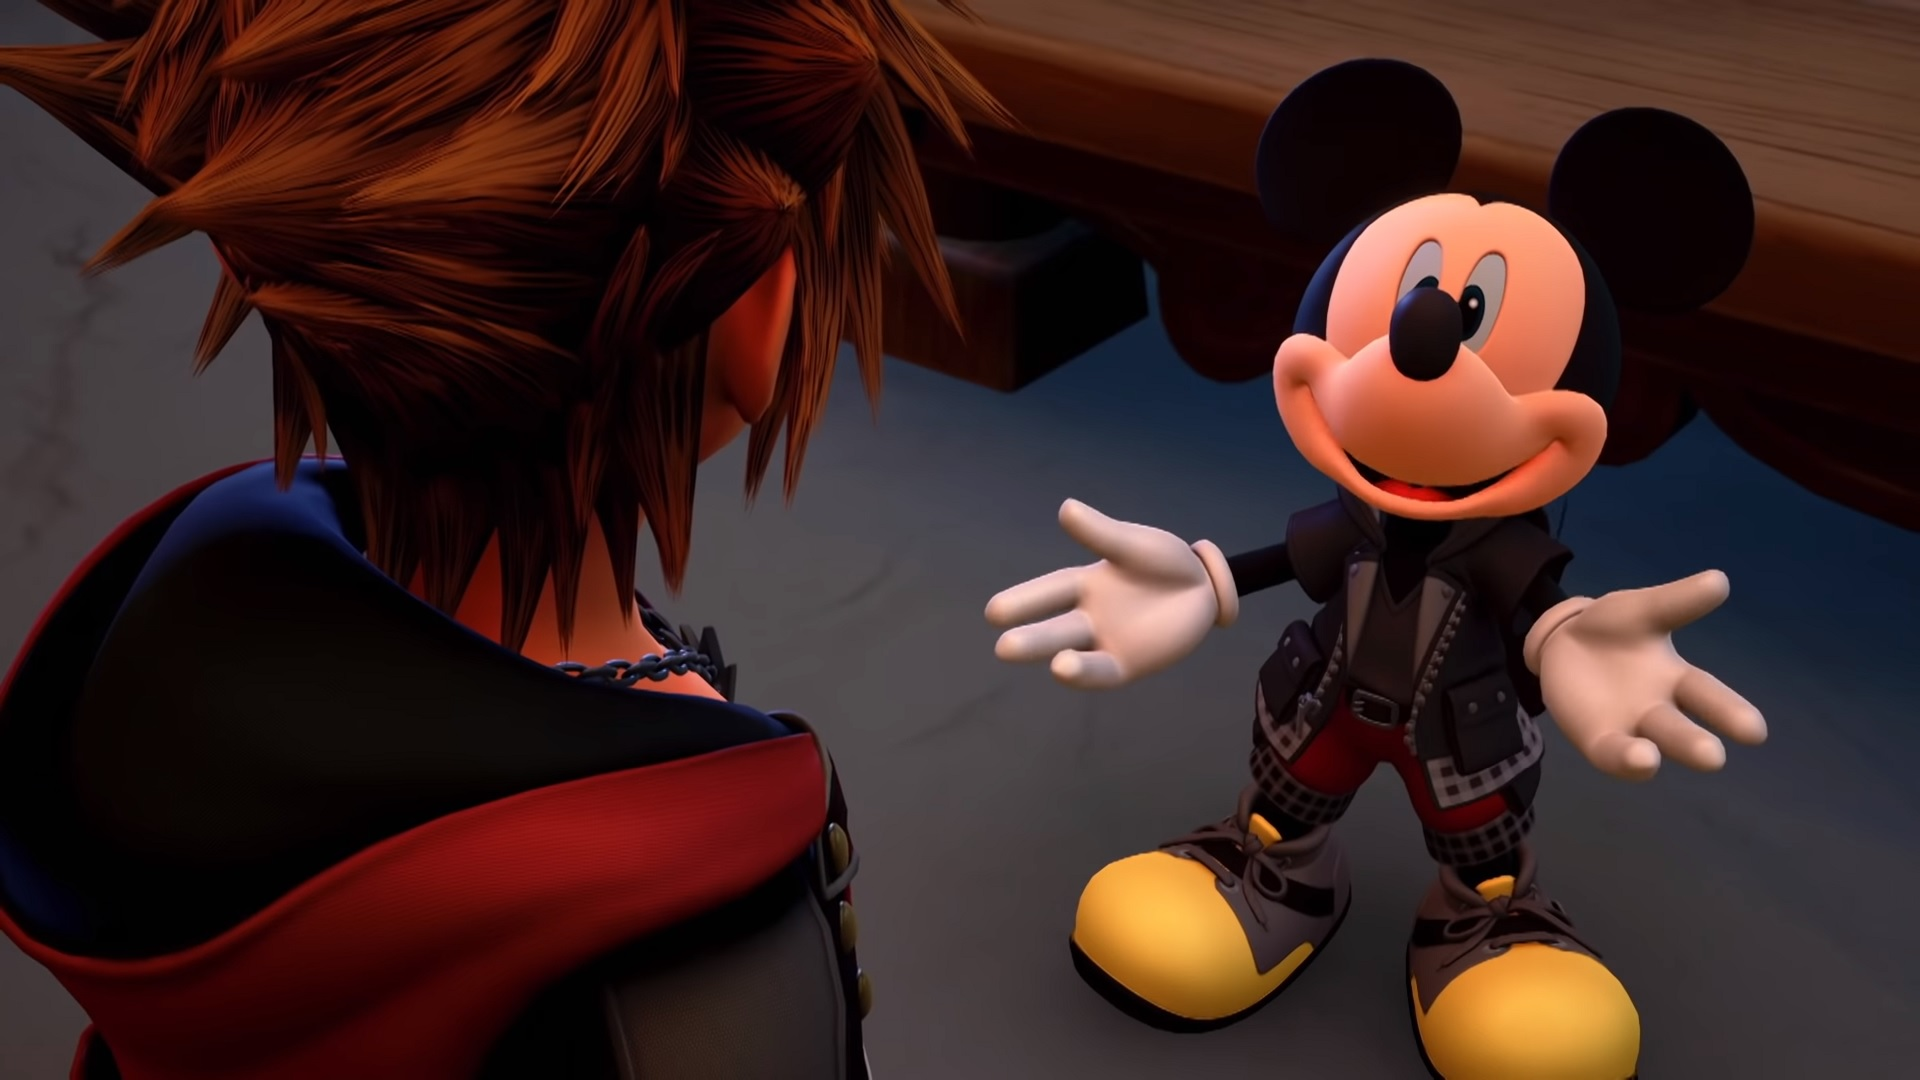 Photo of 5 Kingdom Hearts 3 Fan Theories That Just Might Be True